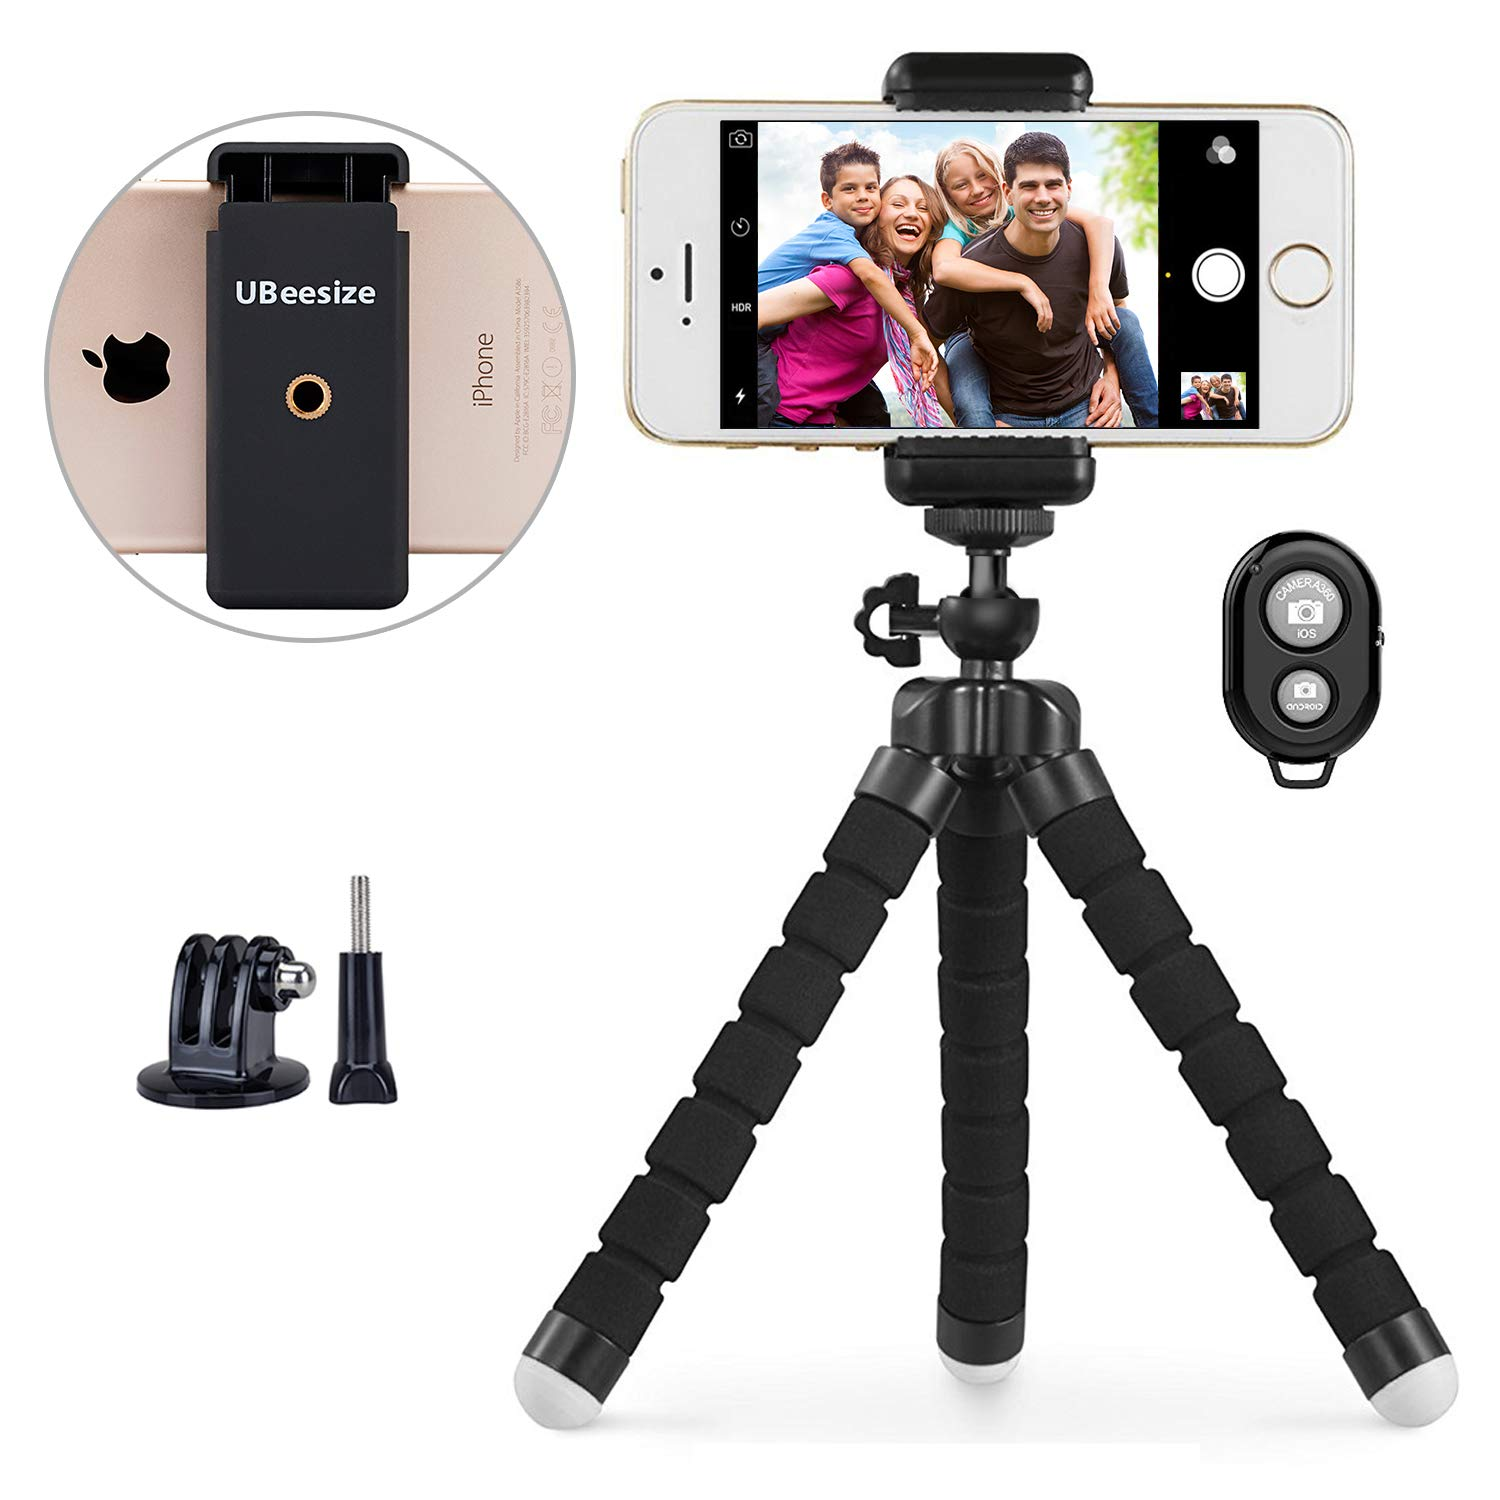 Phone Tripod, UBeesize Portable and Adjustable Camera Stand Holder with Wireless Remote and Universal Clip, Compatible with iPhone, Android Phone, Camera, Sports Camera GoPro【2018 New Version】